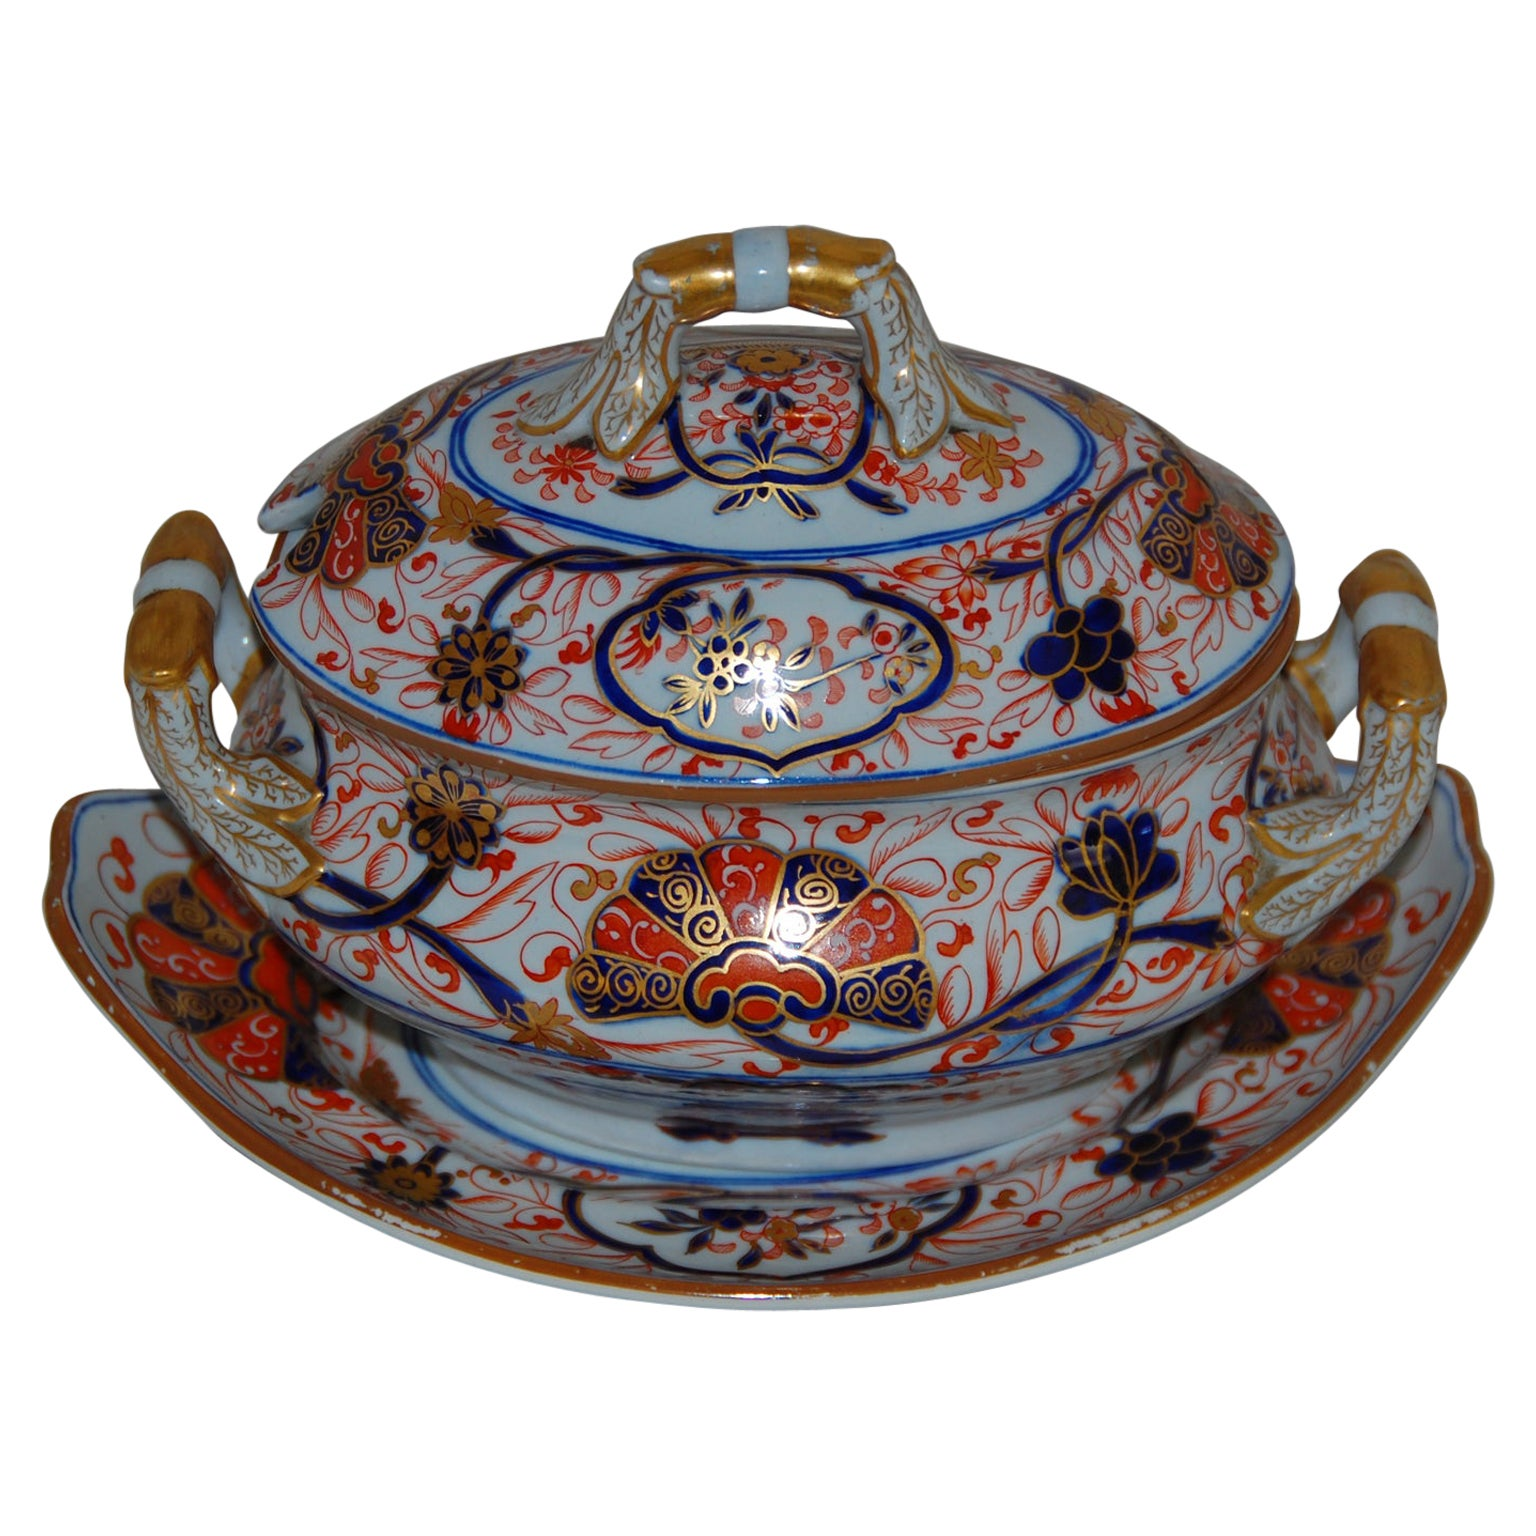 English Early 19th Century Spode Ironstone Sauce Tureen and Underliner